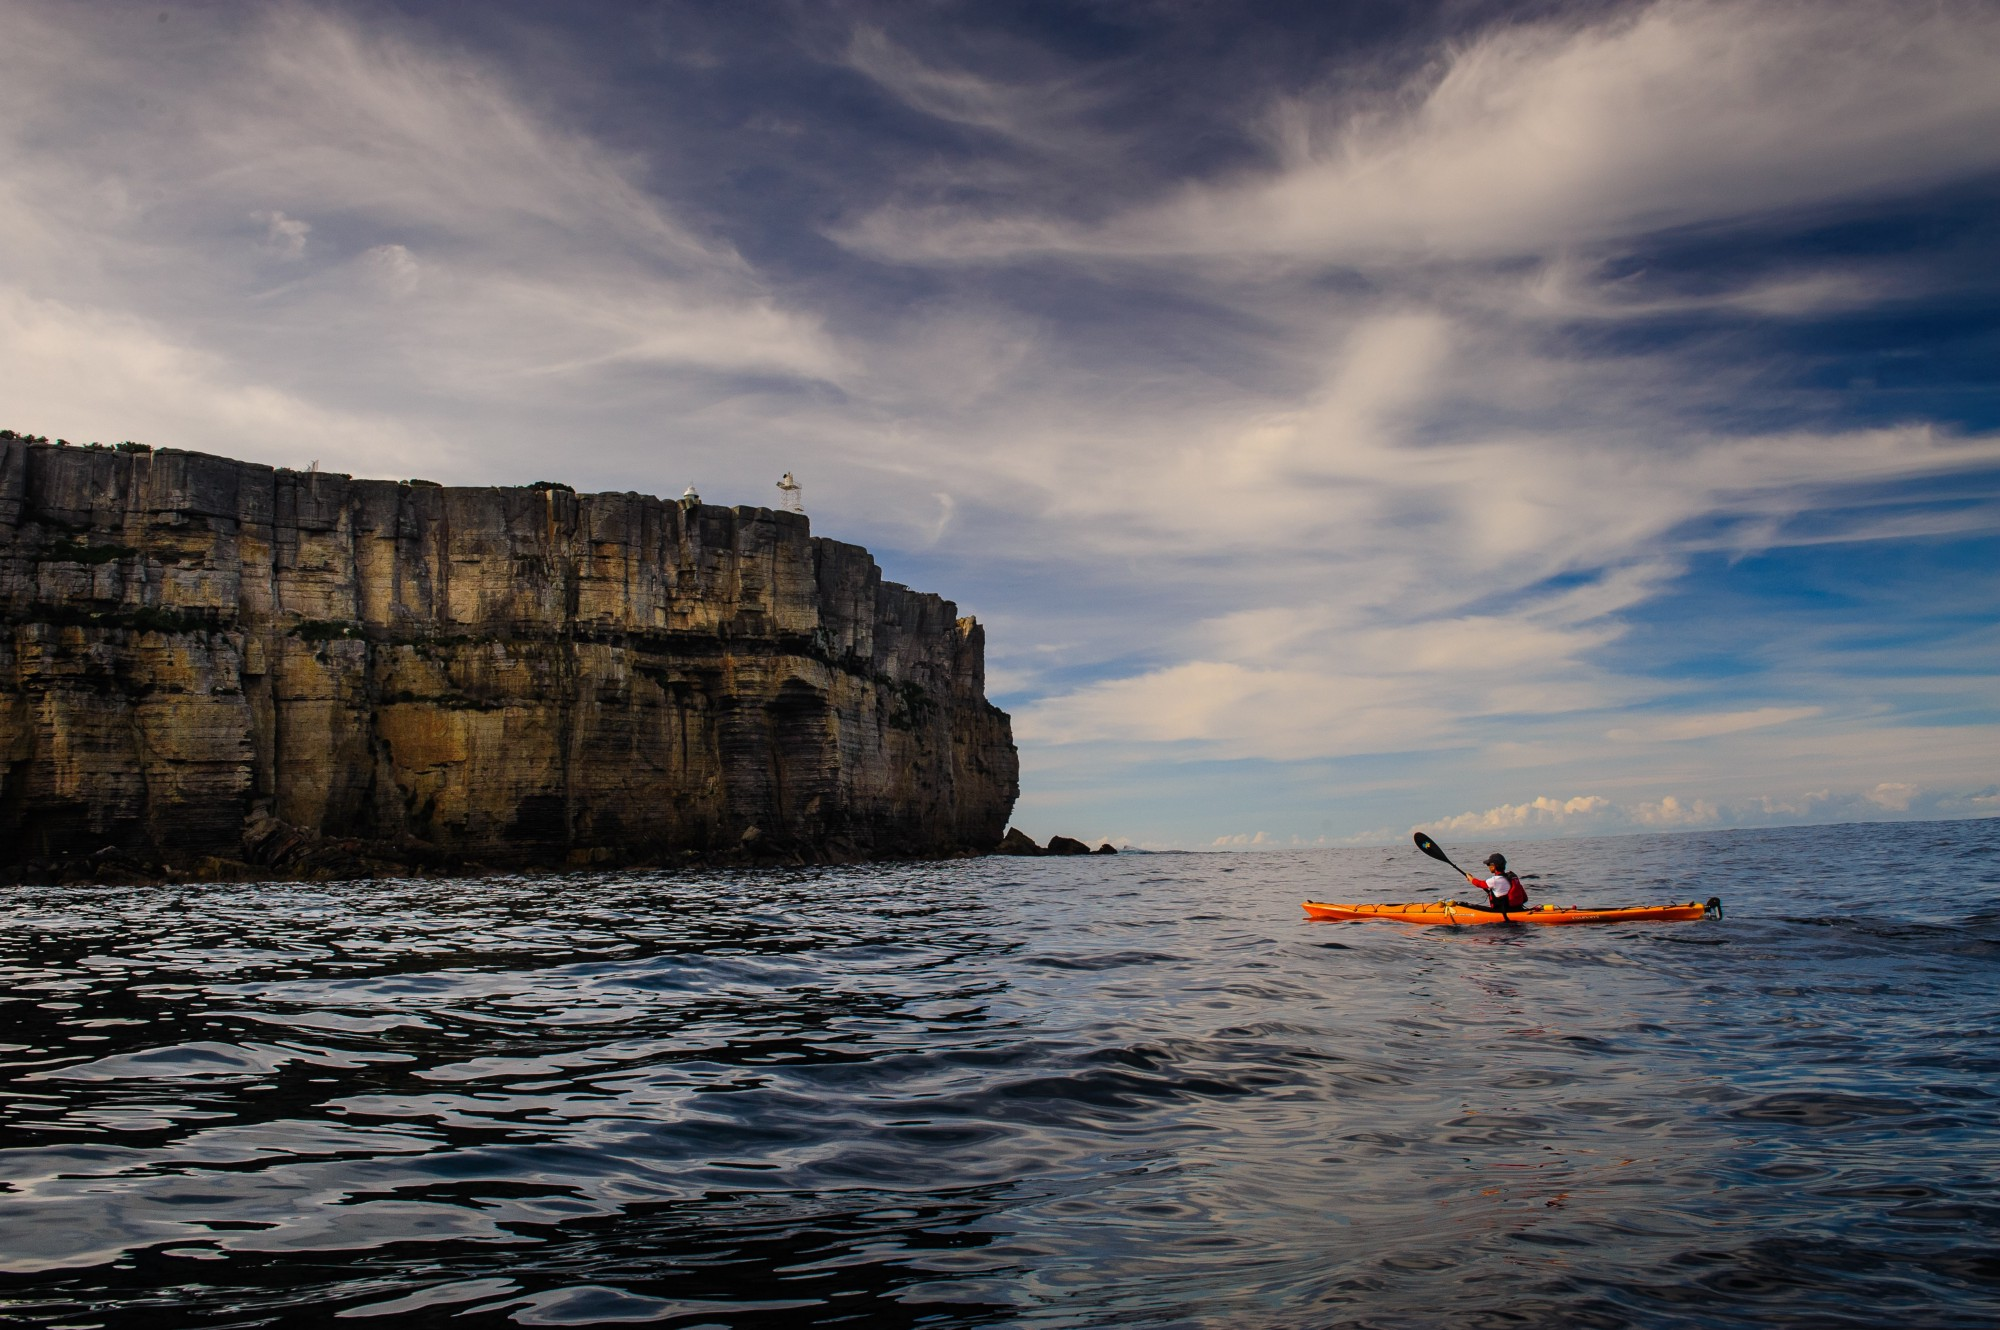 A kayaker in the ocean.